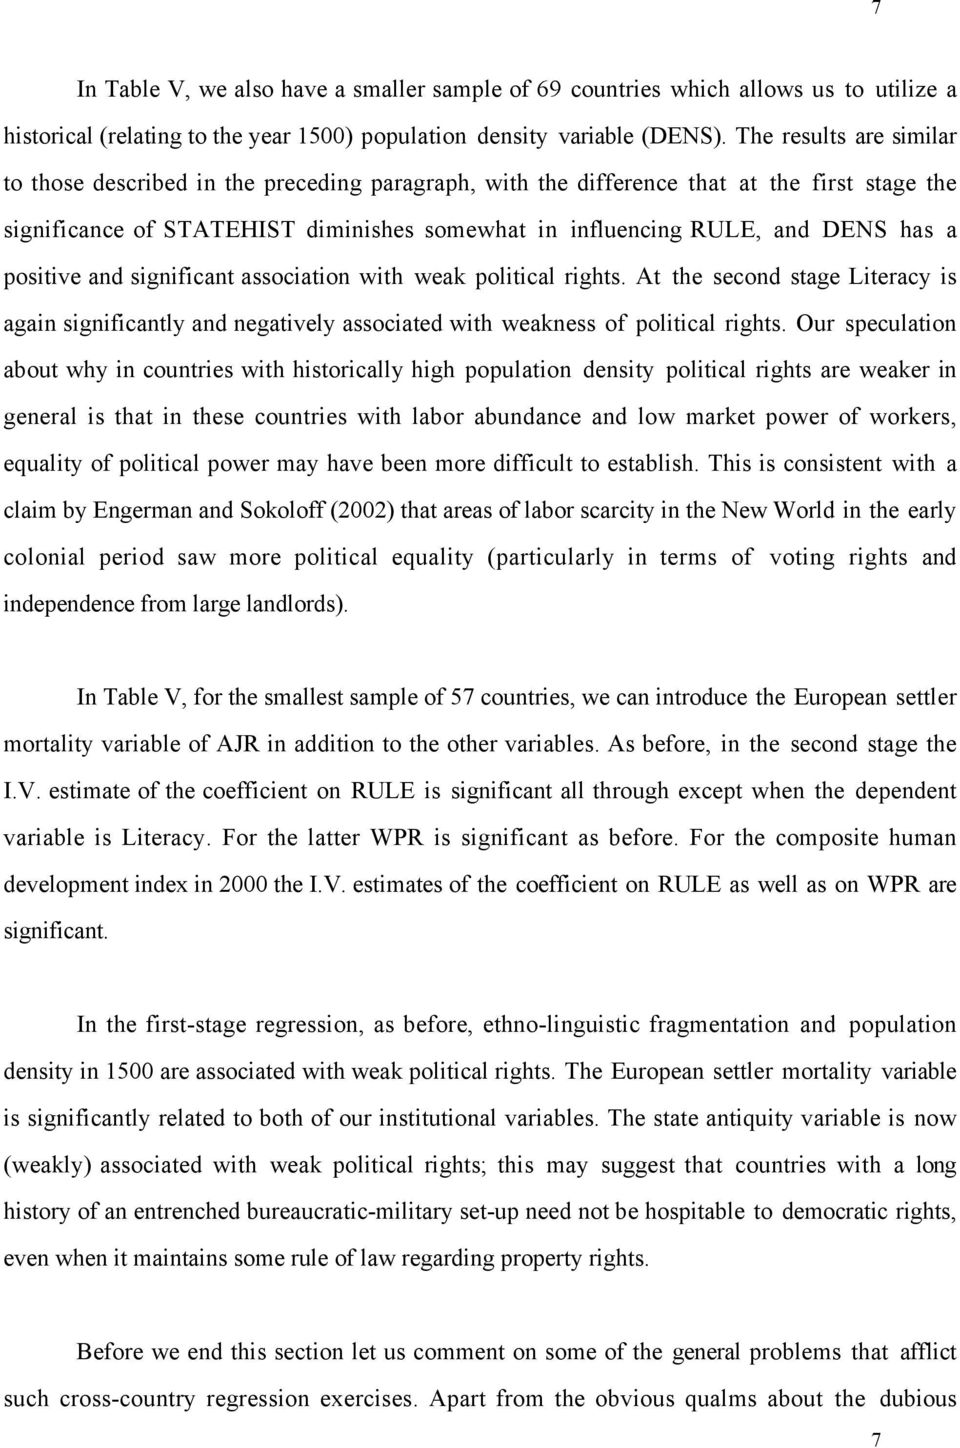 a positive and significant association with weak political rights. At the second stage Literacy is again significantly and negatively associated with weakness of political rights.